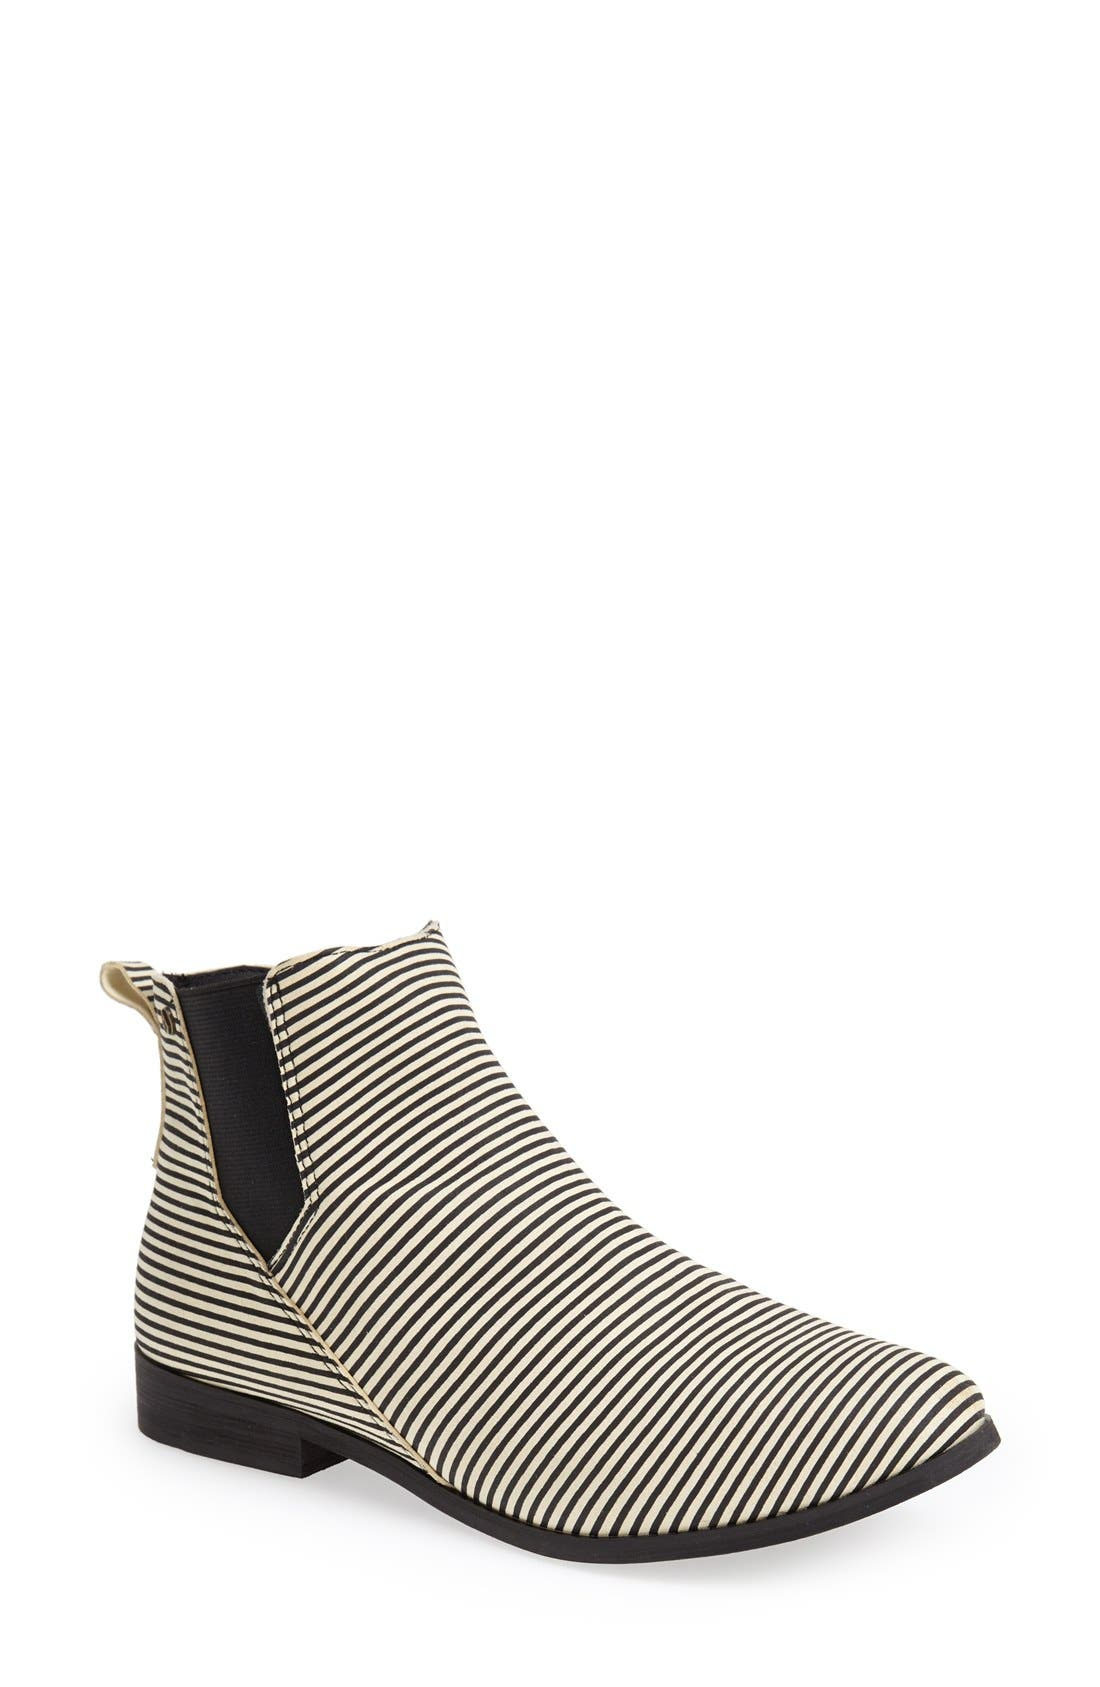 Alternate Image 1 Selected - Volcom 'Killer' Bootie (Women)